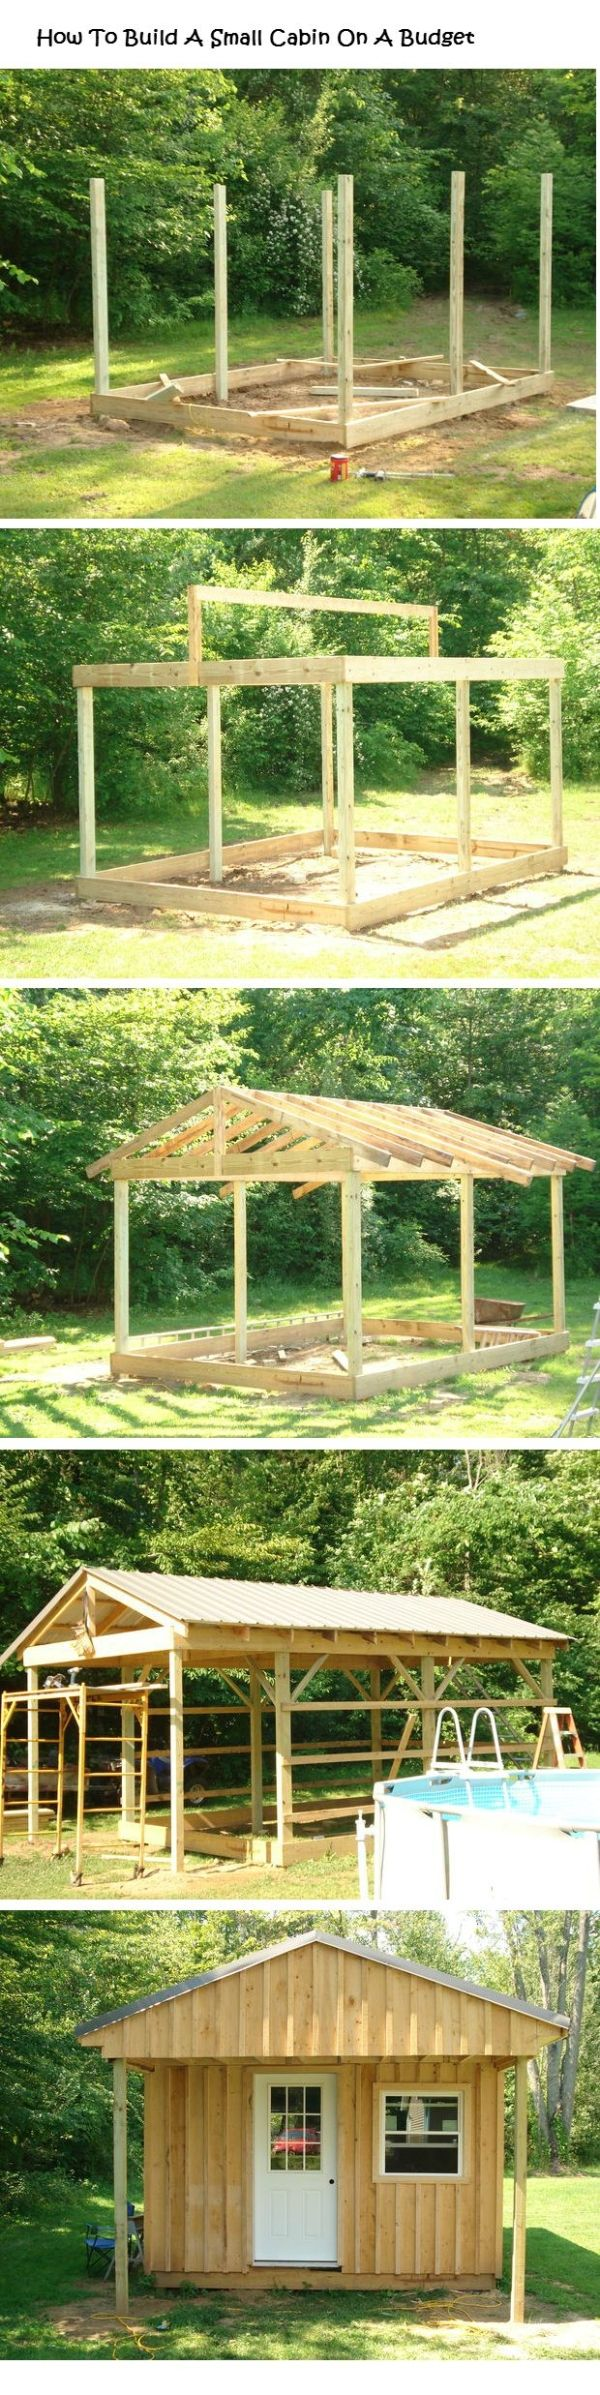 How To Build A Small Cabin On A Budget by sammsfamily